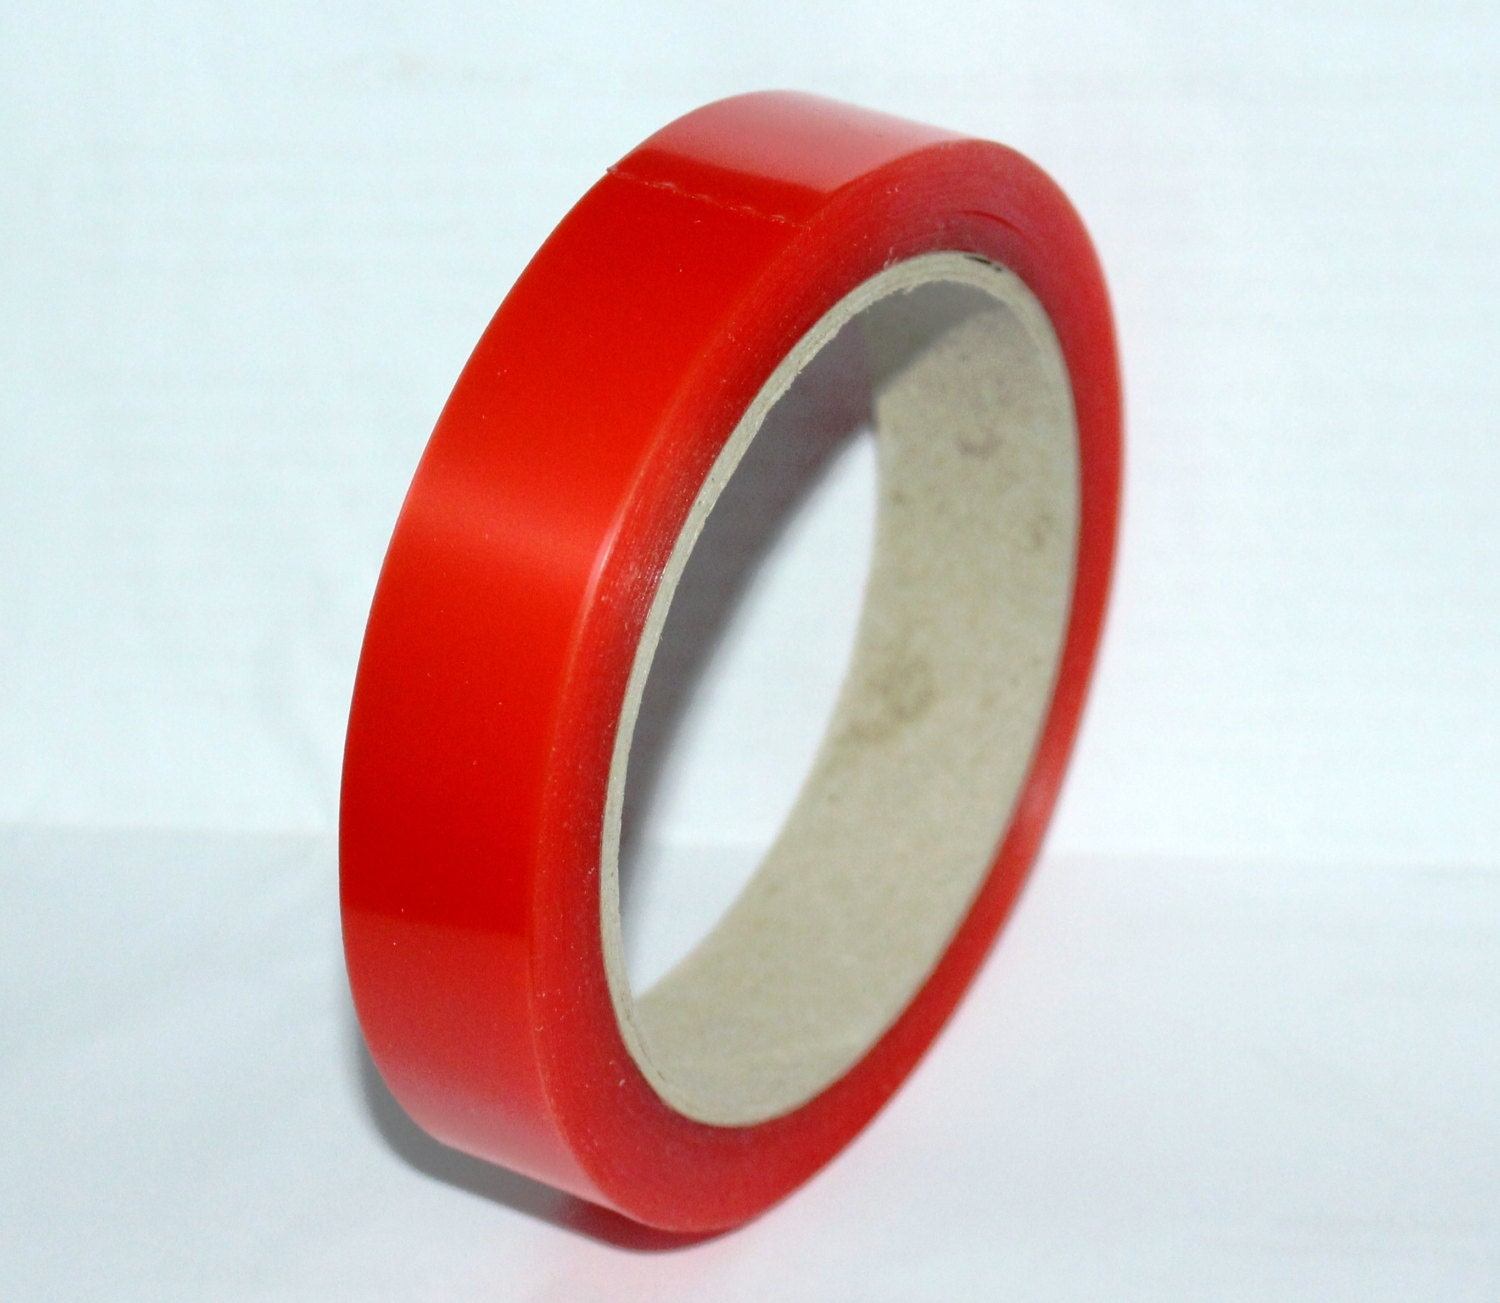 Double sided craft tape - Sold By Bits4uk